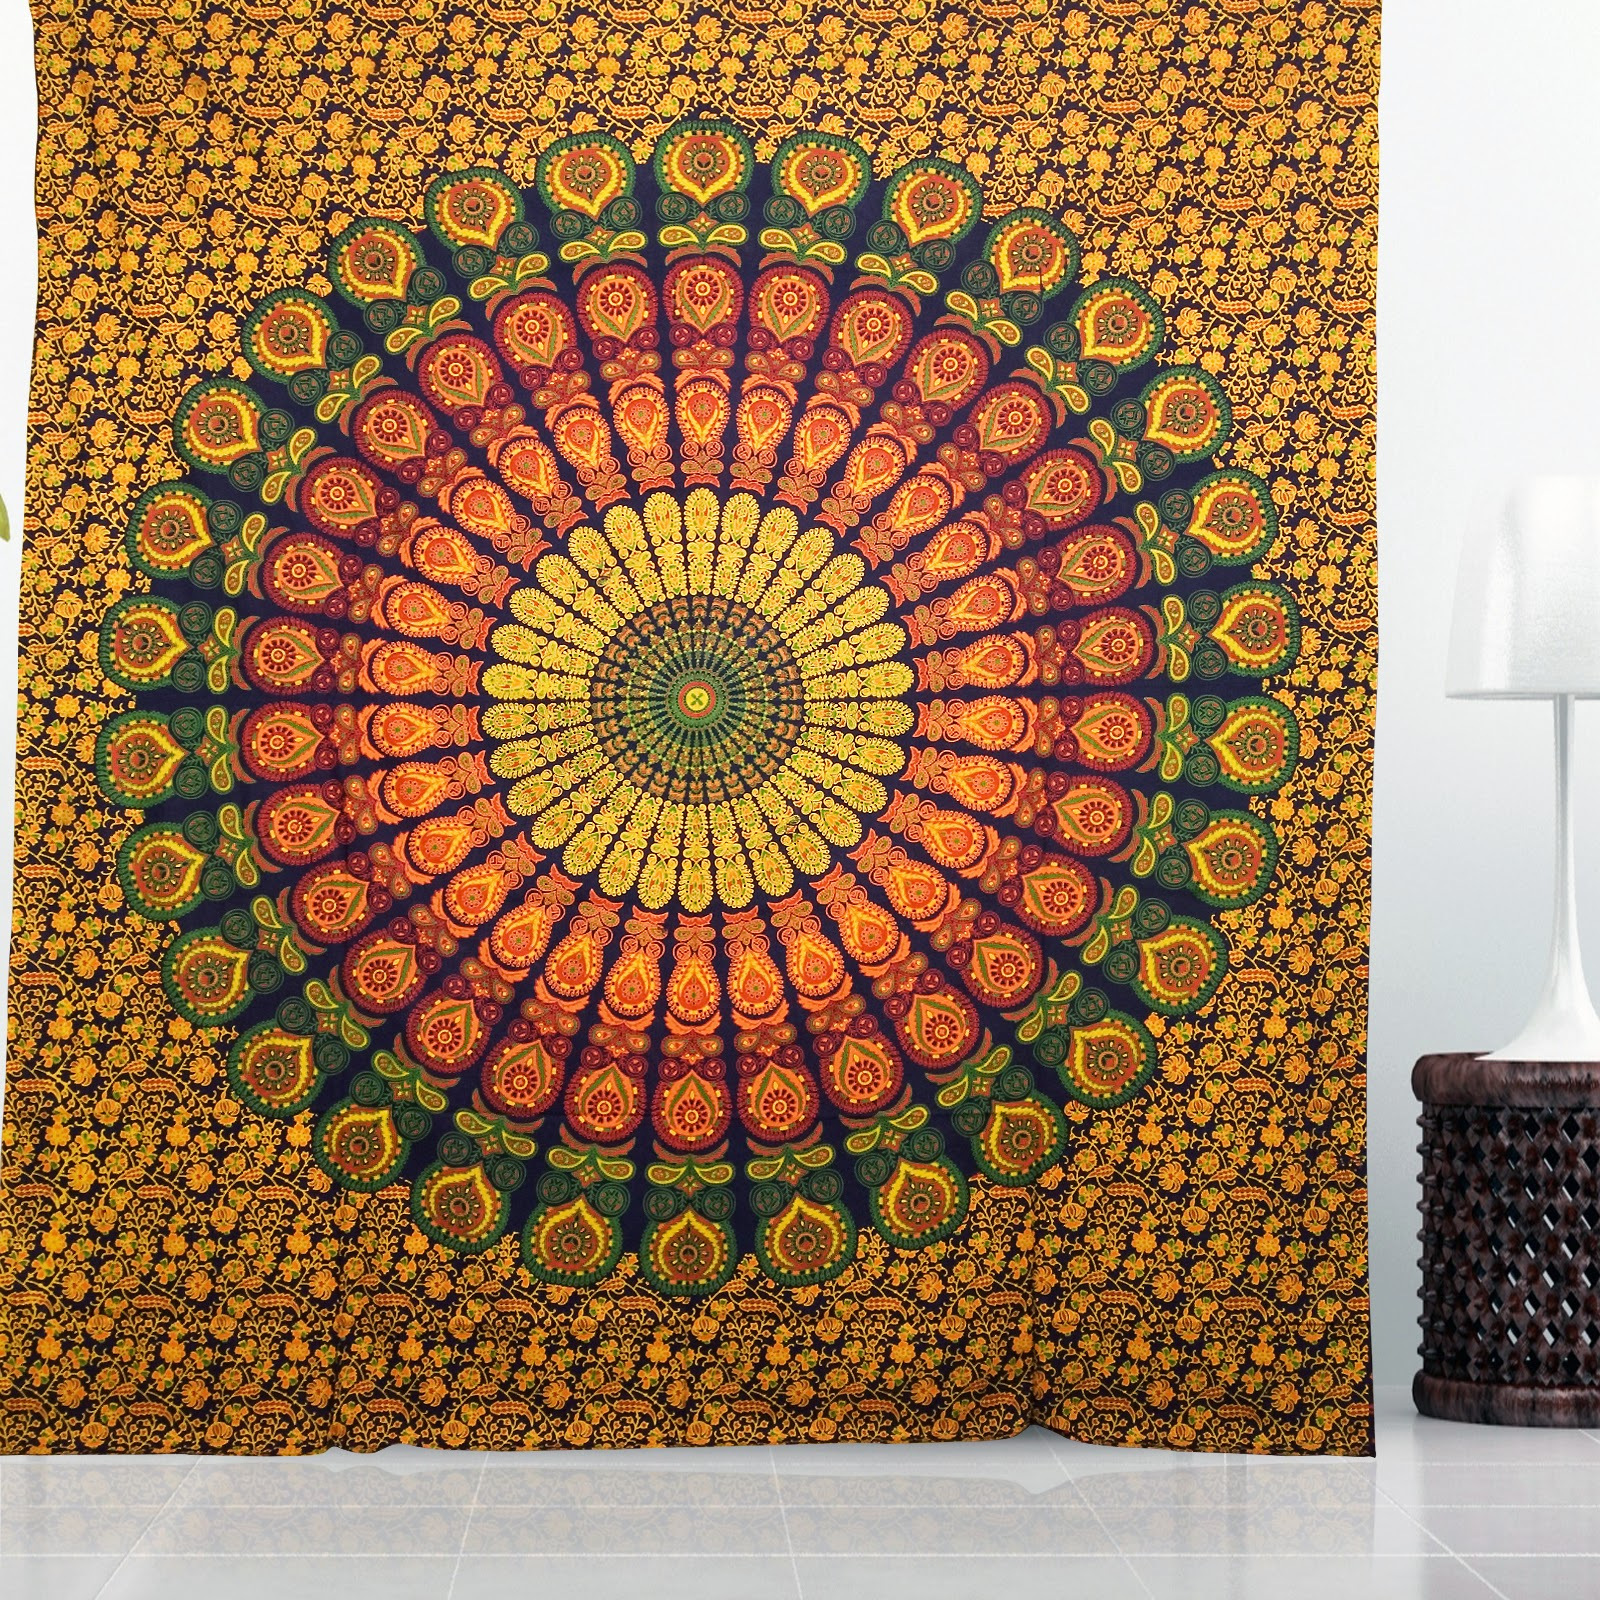 large wall tapestry mandala hippie bedding indian tapestries block print table cloth beach tapestry ceiling stylish wall decor bohemian - Large Wall Hangings